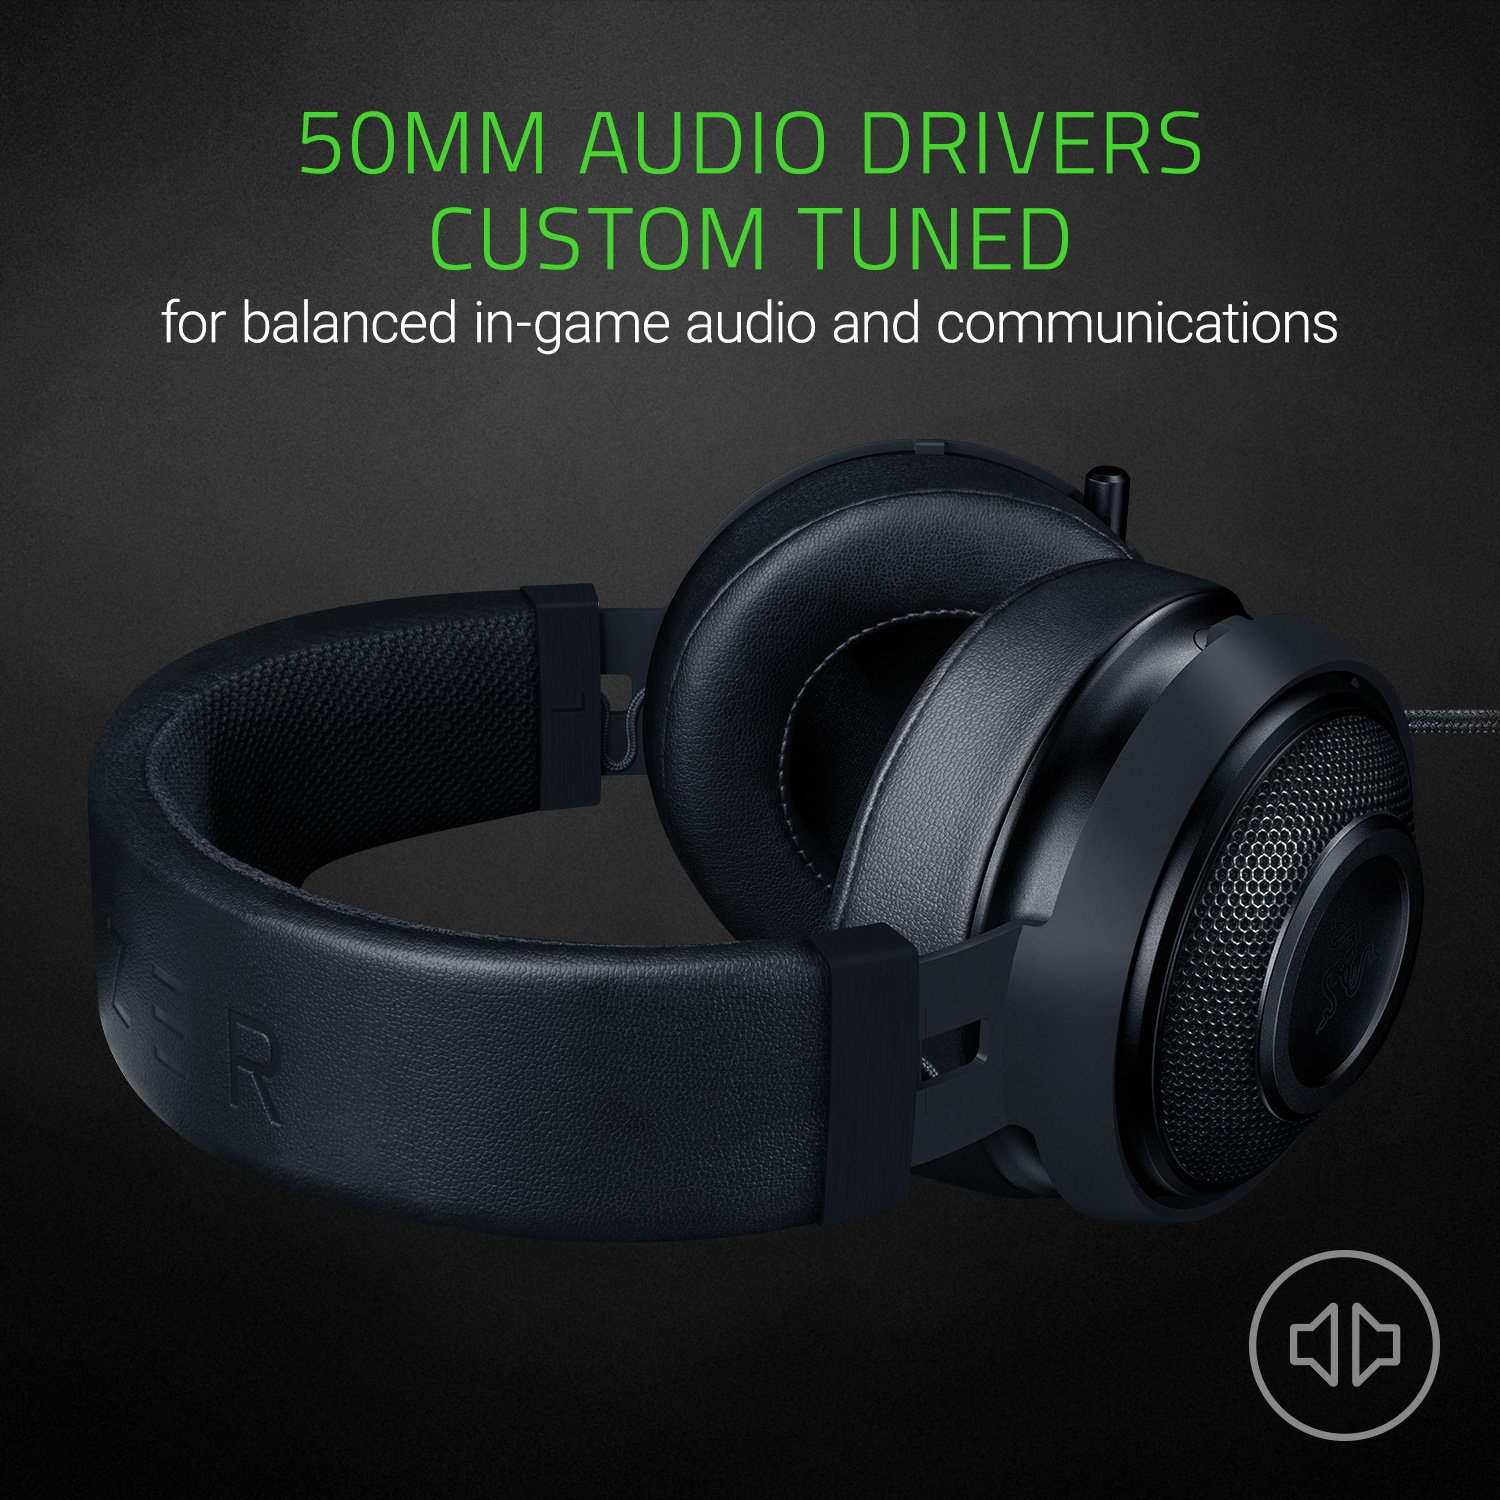 RAZER KRAKEN PRO V2: Lightweight Aluminum Headband - Retractable Mic -  In-Line Remote - Gaming Headset Works with PC, PS4, Xbox One, Switch, &  Mobile